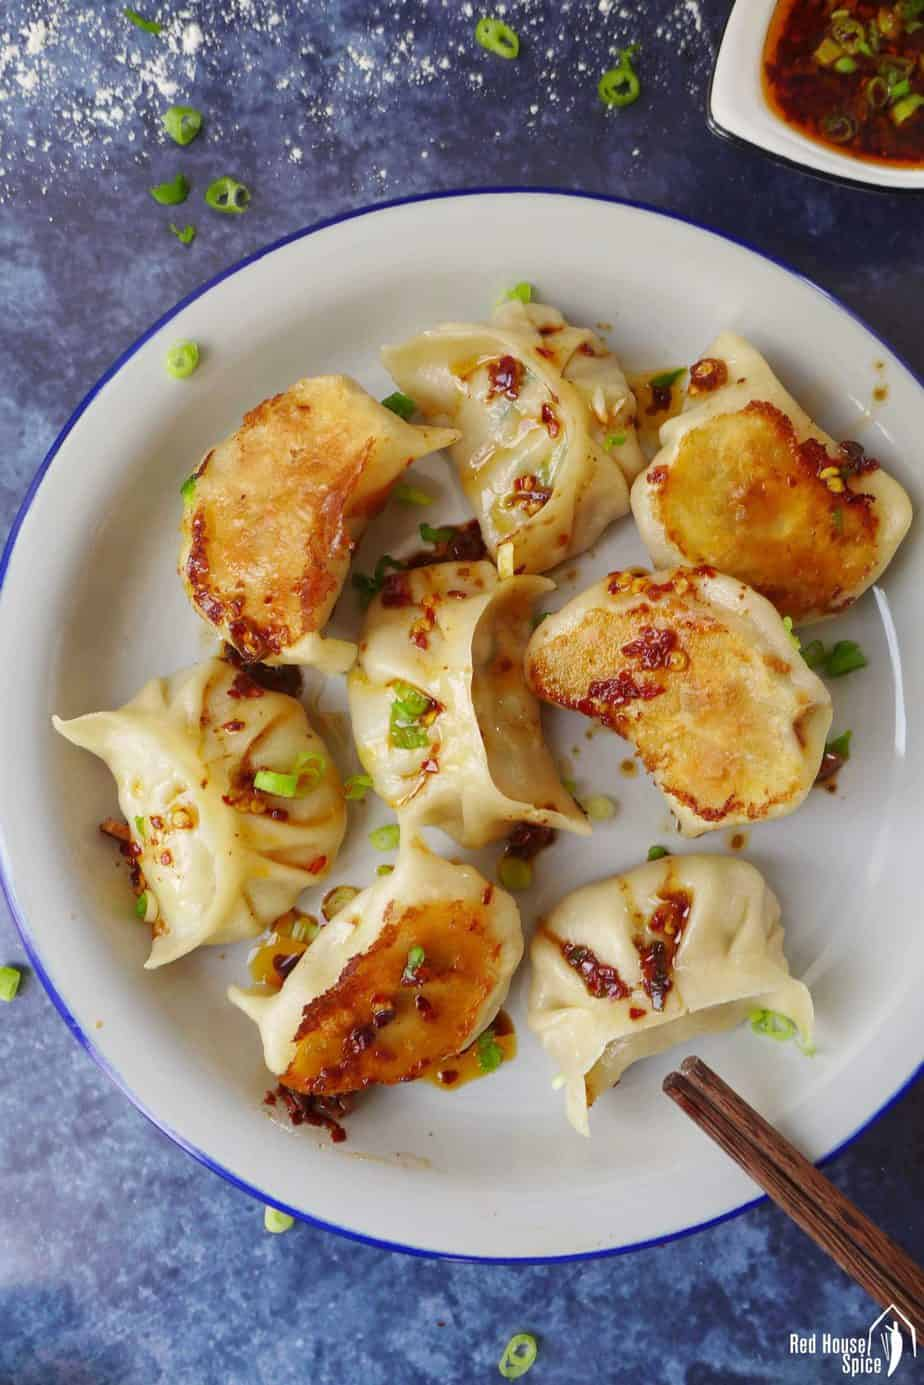 A plate of vegan dumplings covered with spicy sauce